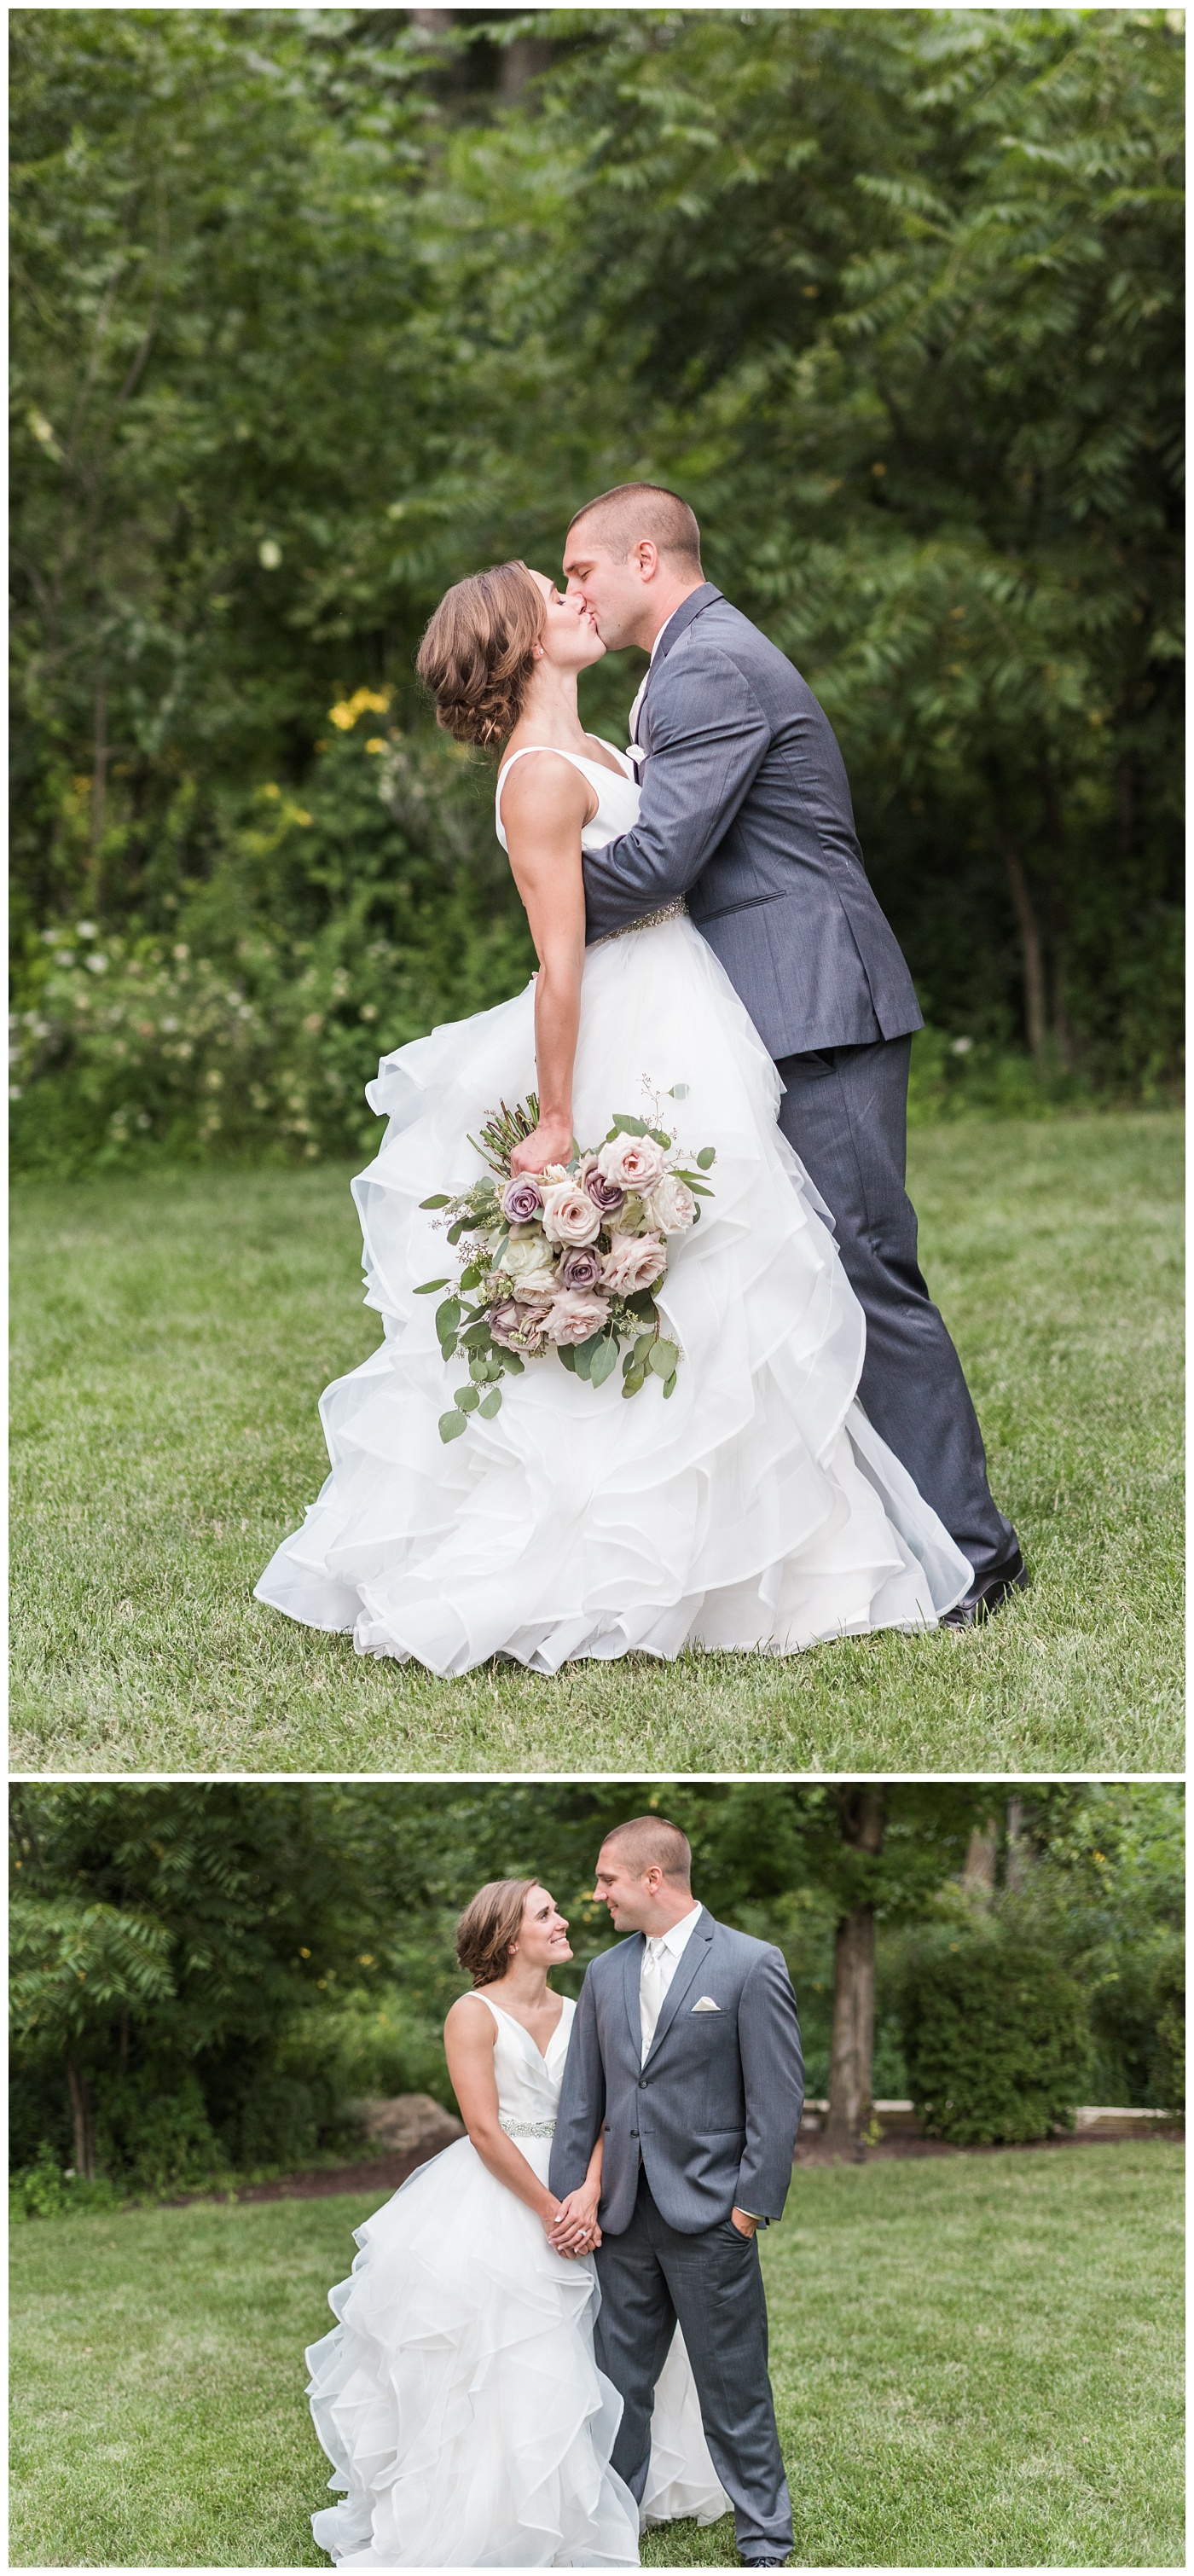 Stephanie Marie Photography Newman Catholic Center Ceremony Bella Sala Reception Tiffin Iowa City Wedding Photographer Chelsey Justin Meyers_0047-1.jpg